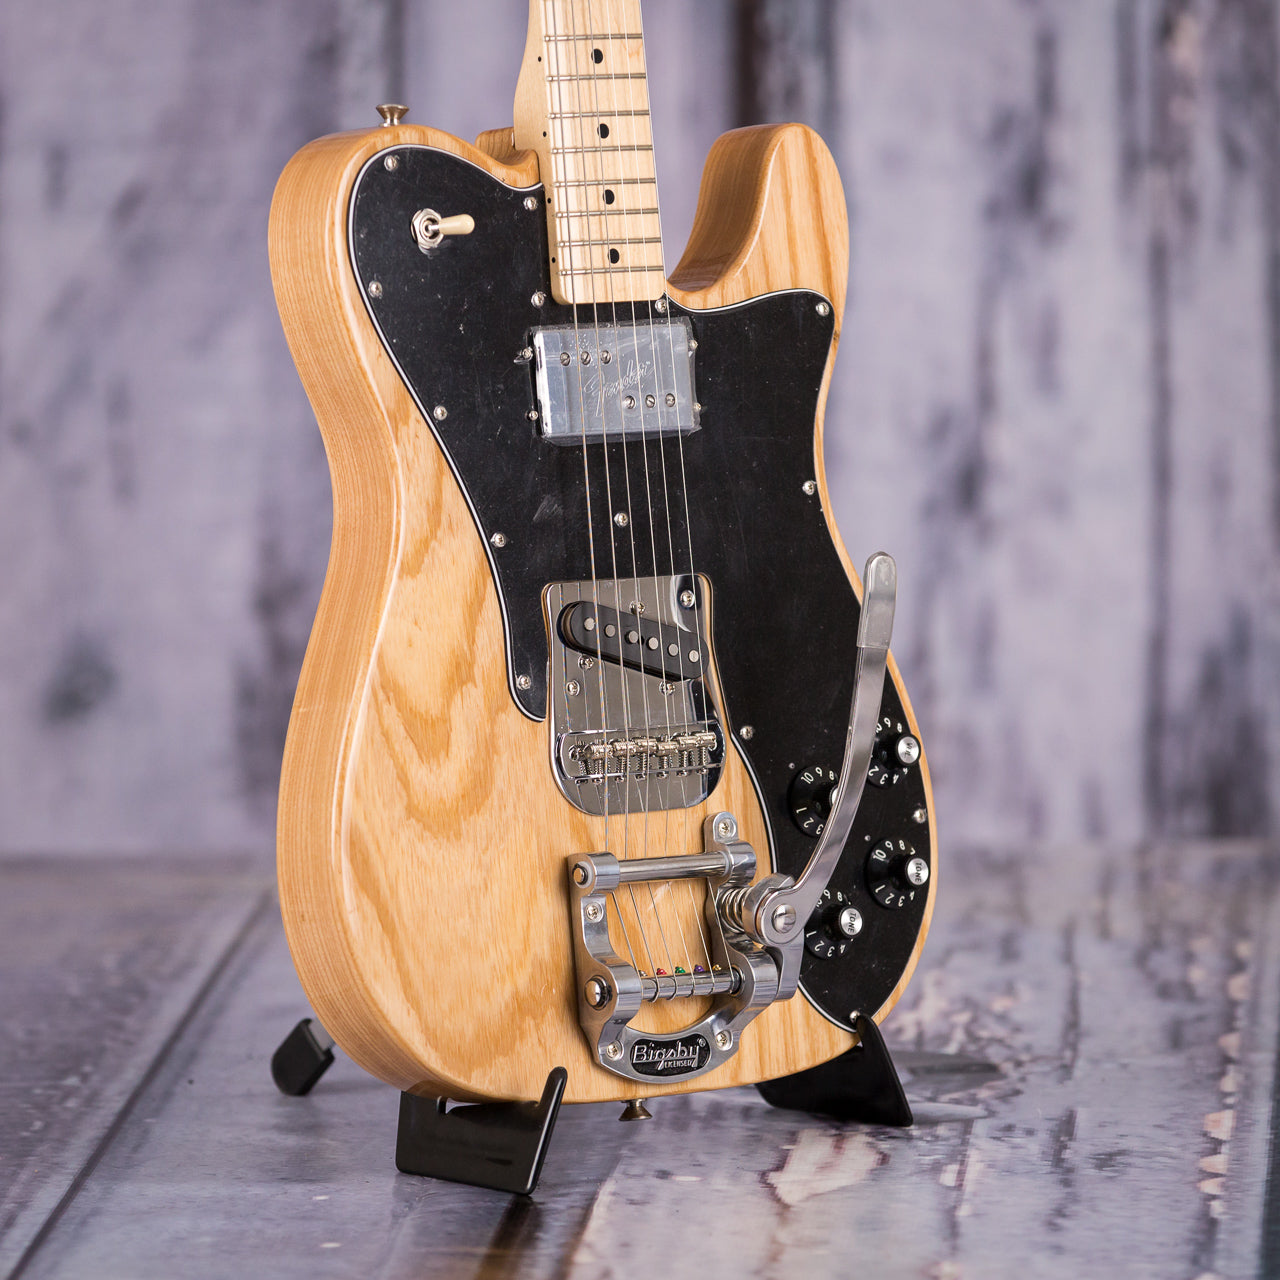 fender limited edition 39 72 telecaster custom with bigsby 2018 natural for sale replay guitar. Black Bedroom Furniture Sets. Home Design Ideas